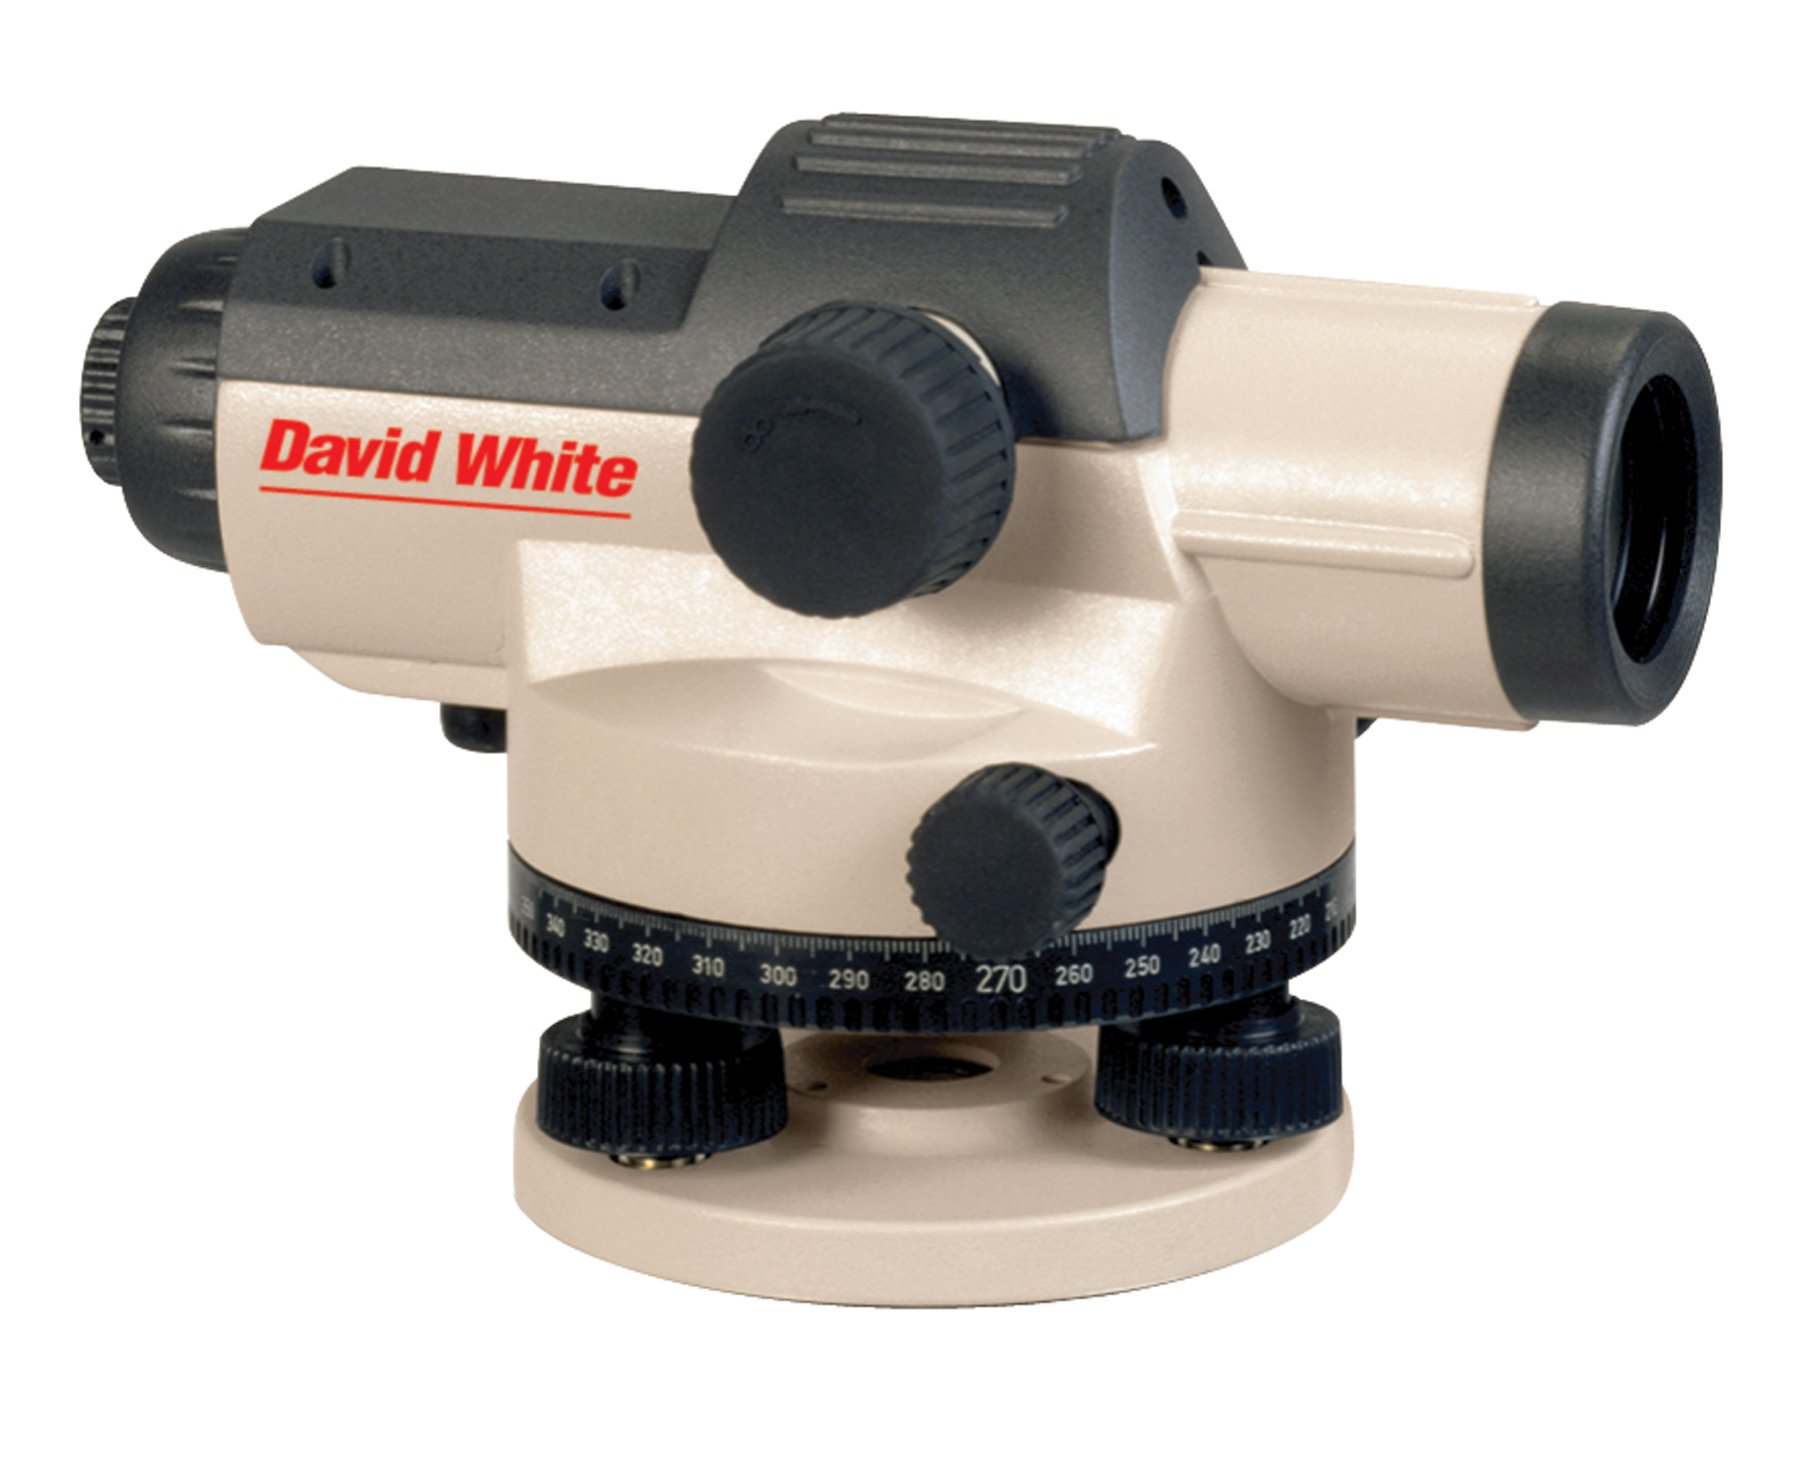 David White 26 Power Automatic Optical